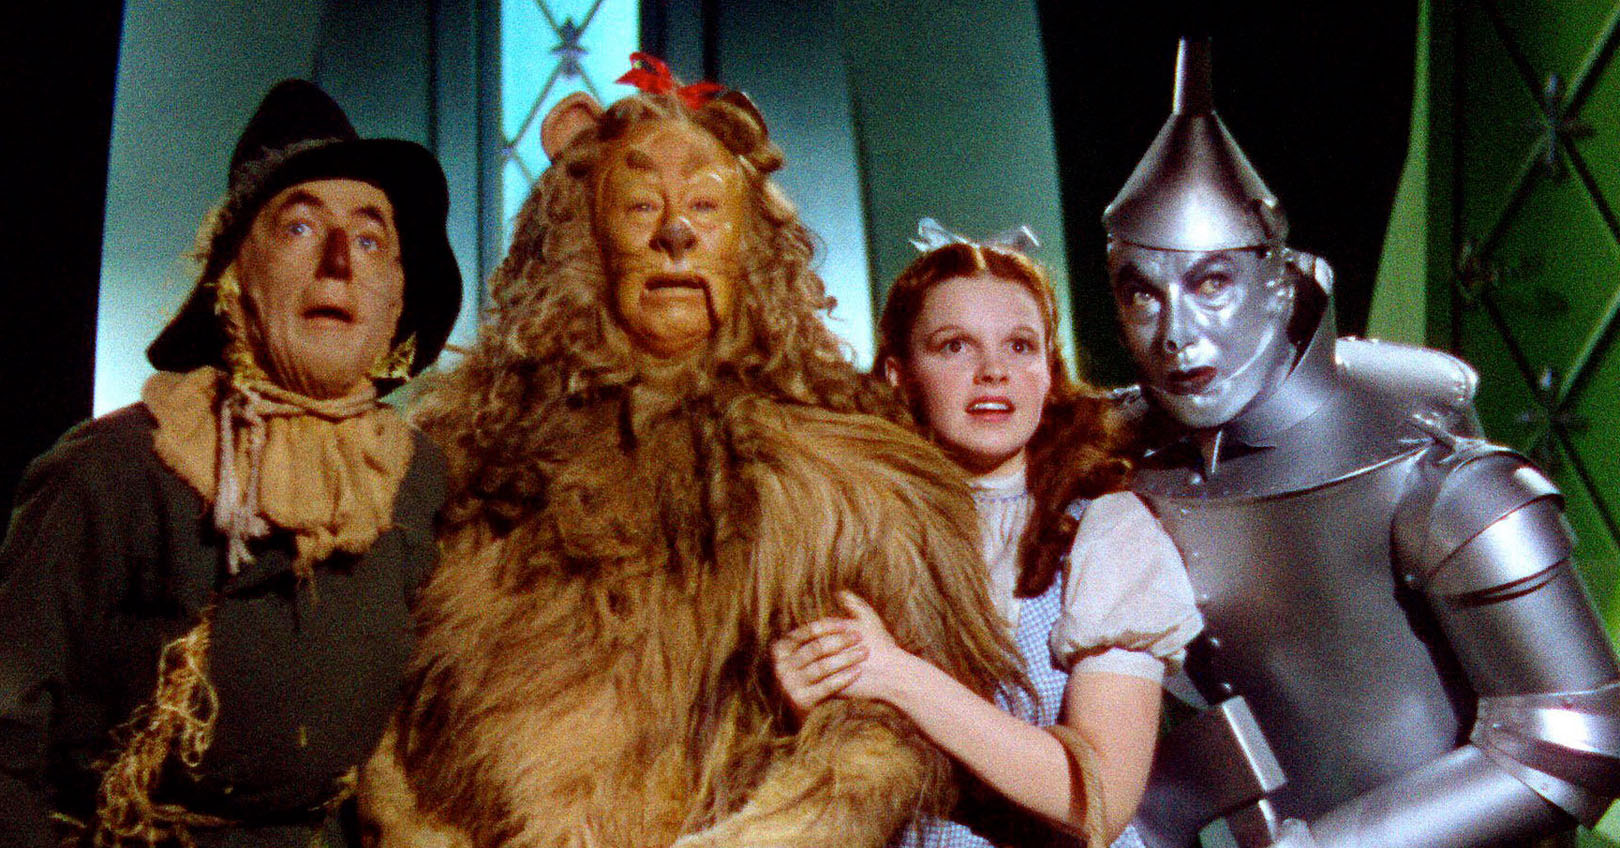 The Wizard of Oz - Ray Bolger, Bert Lahr, Jud Garland, and Jack Haley